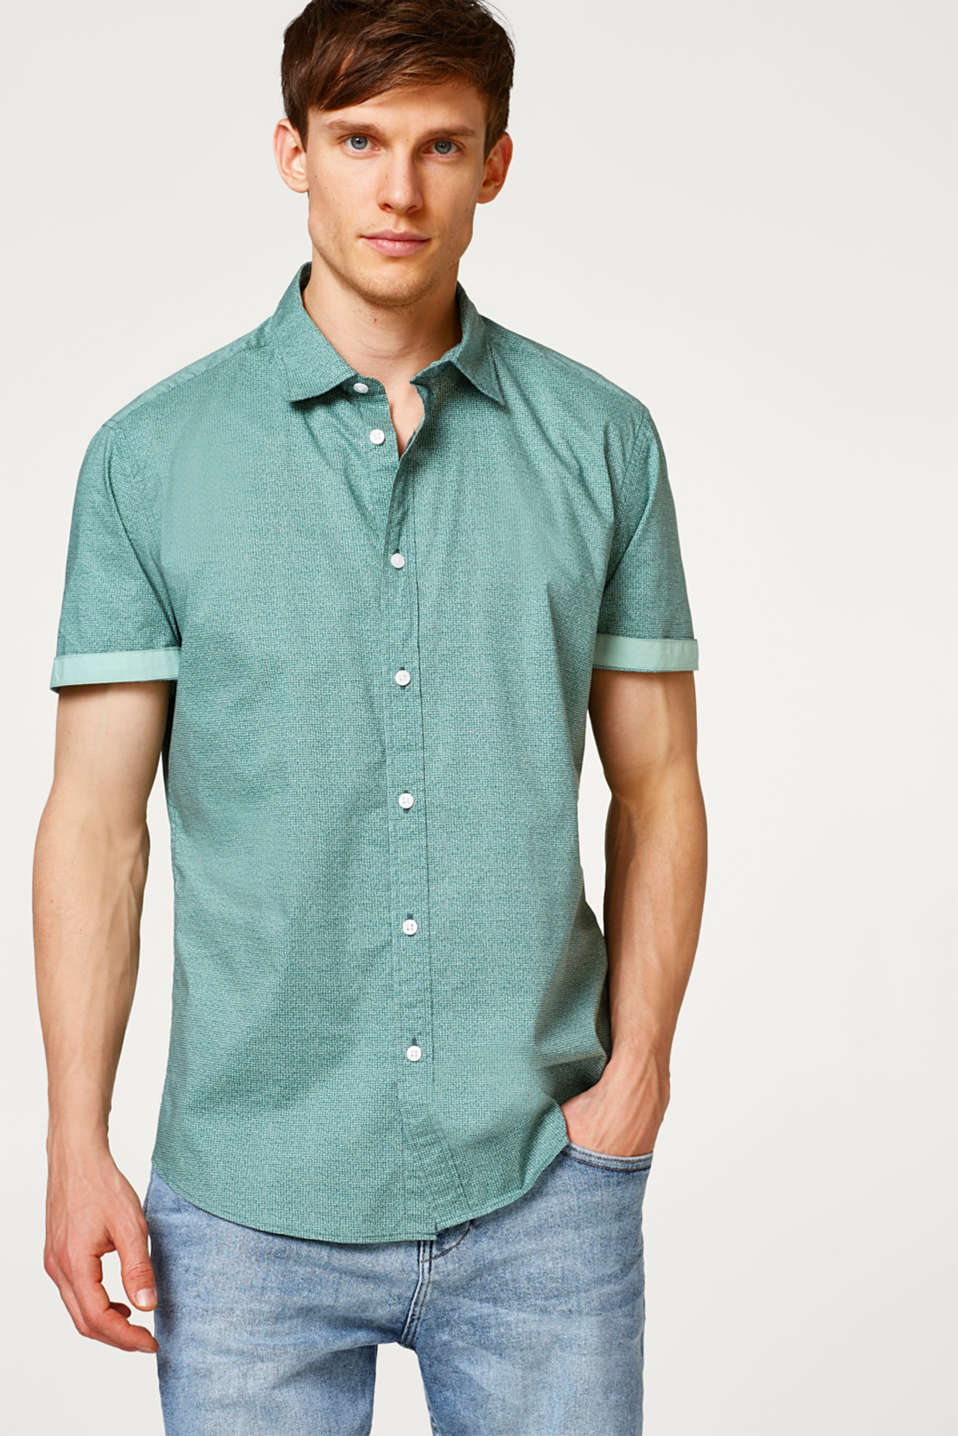 Esprit - Short sleeve shirt with an all-over print, made of cotton